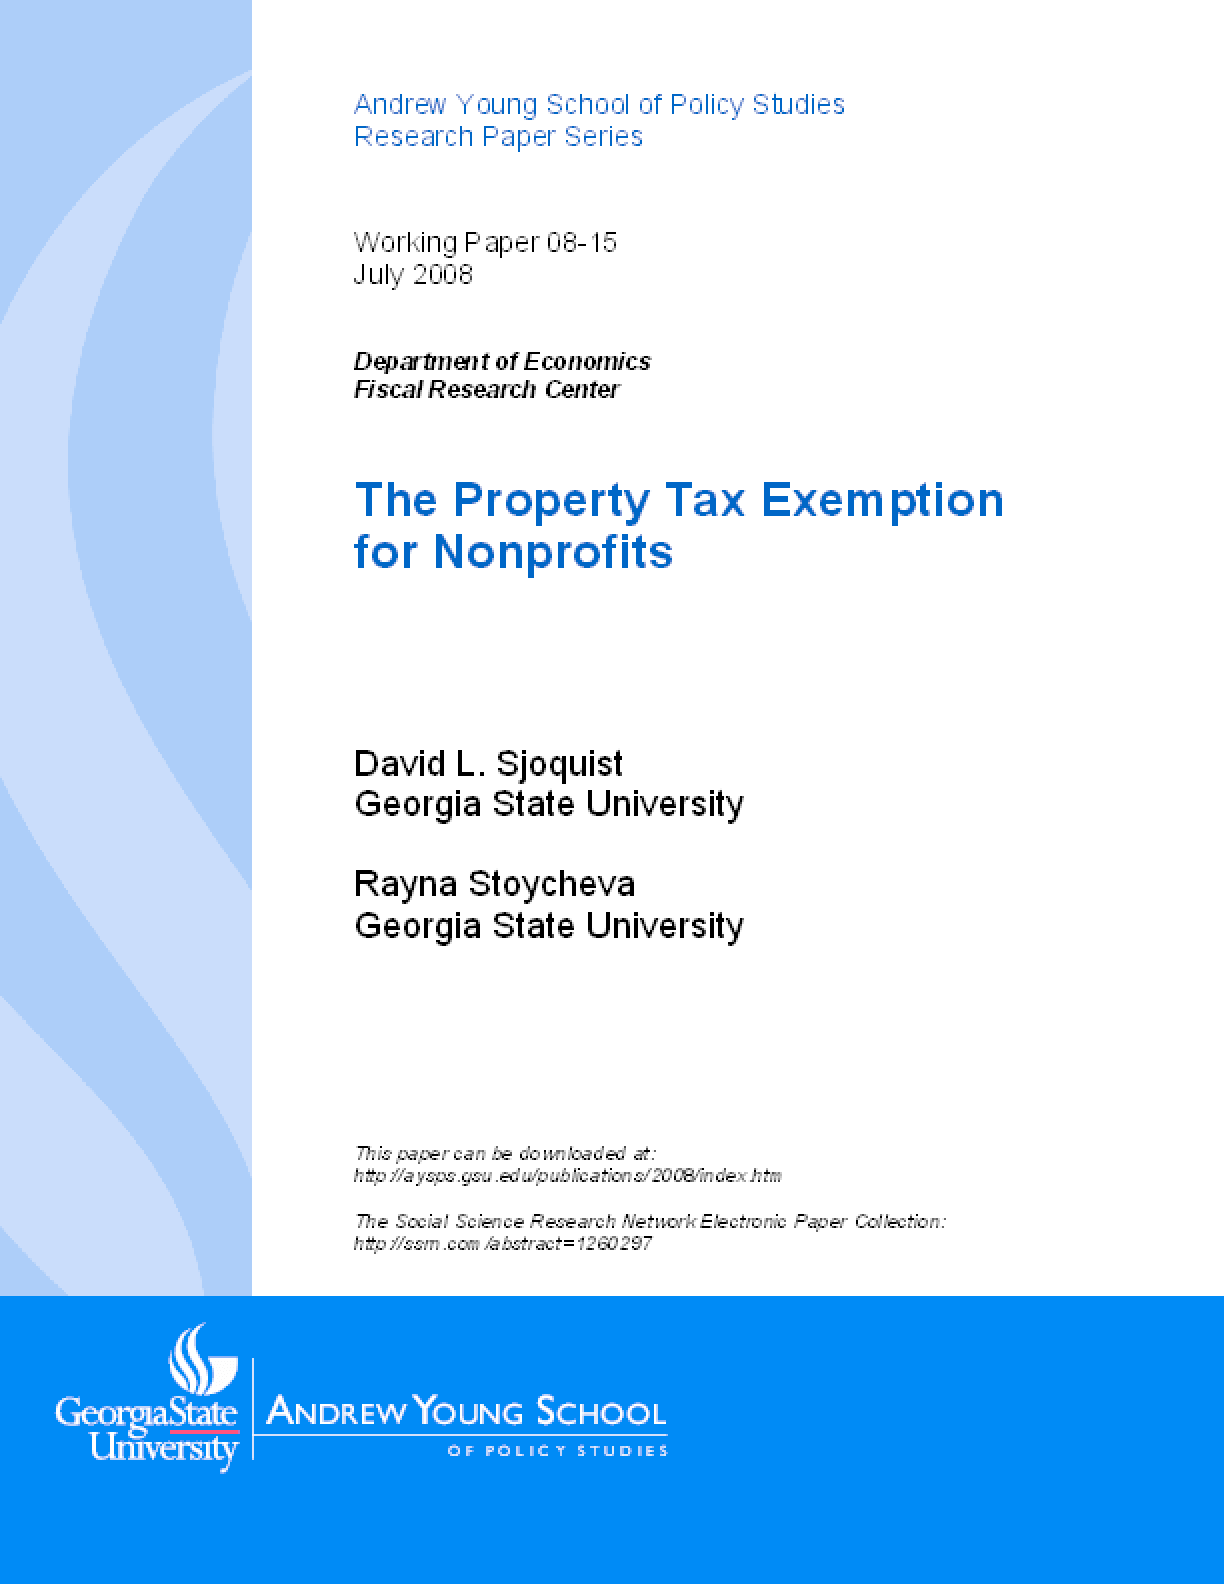 The Property Tax Exemption for Nonprofits